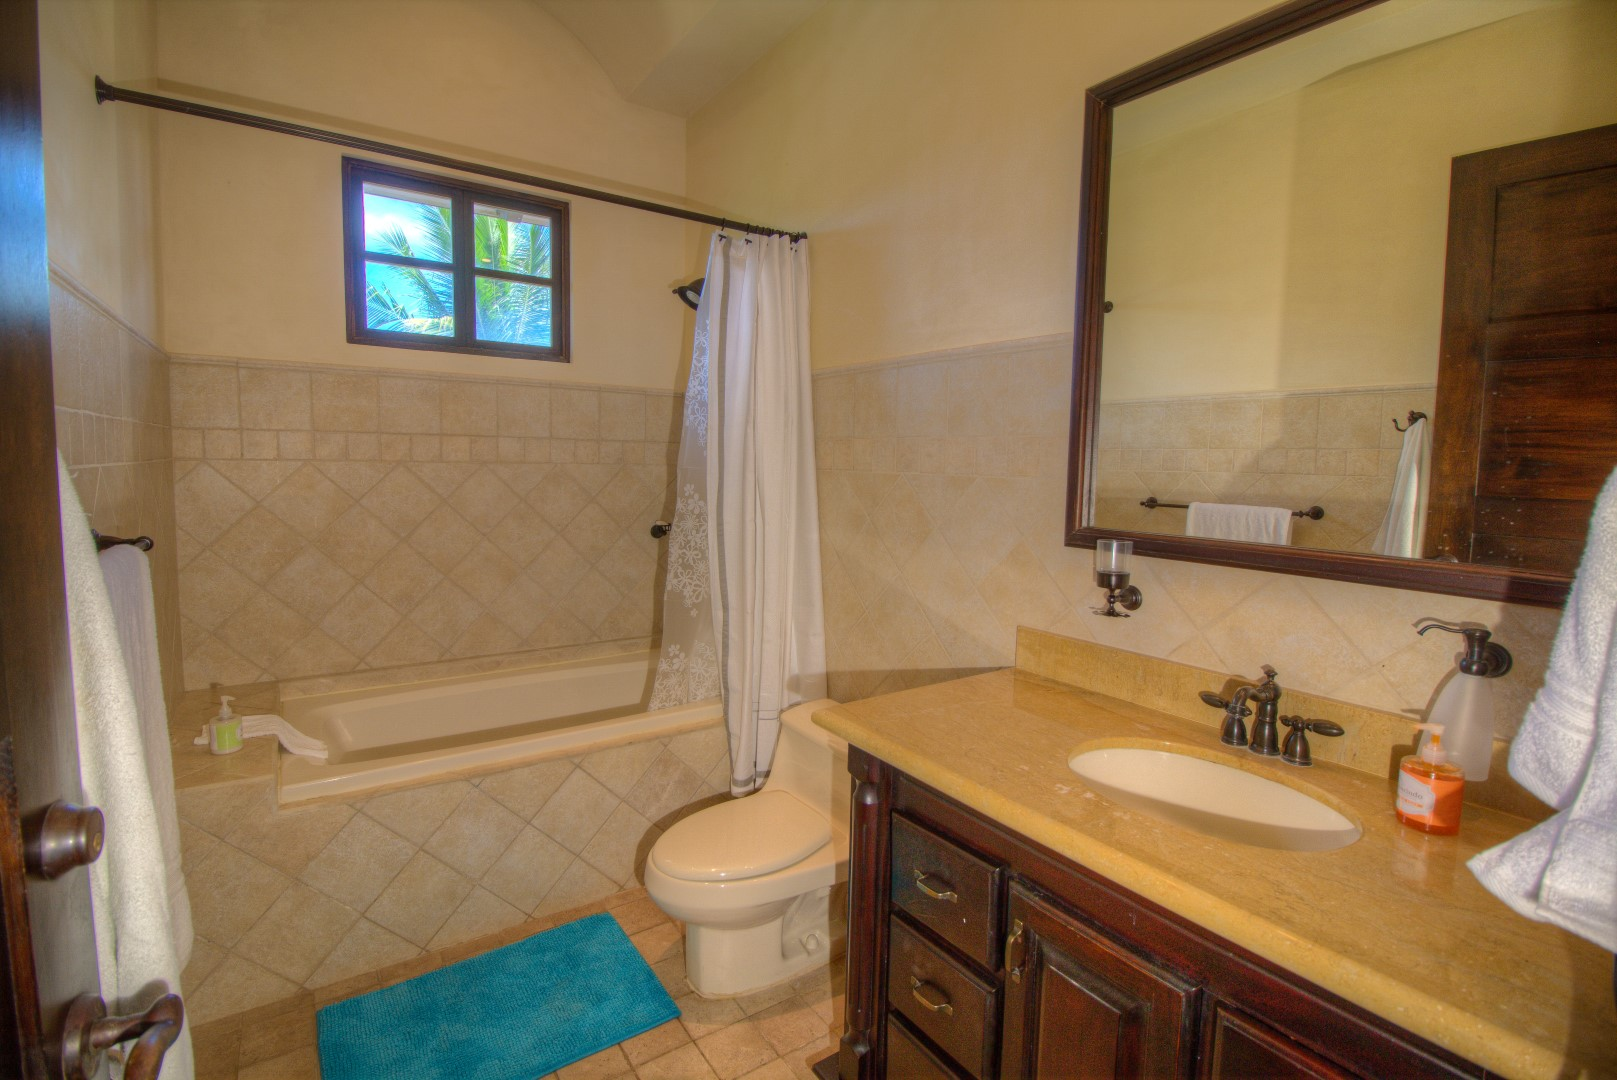 Bathroom with shower and tub